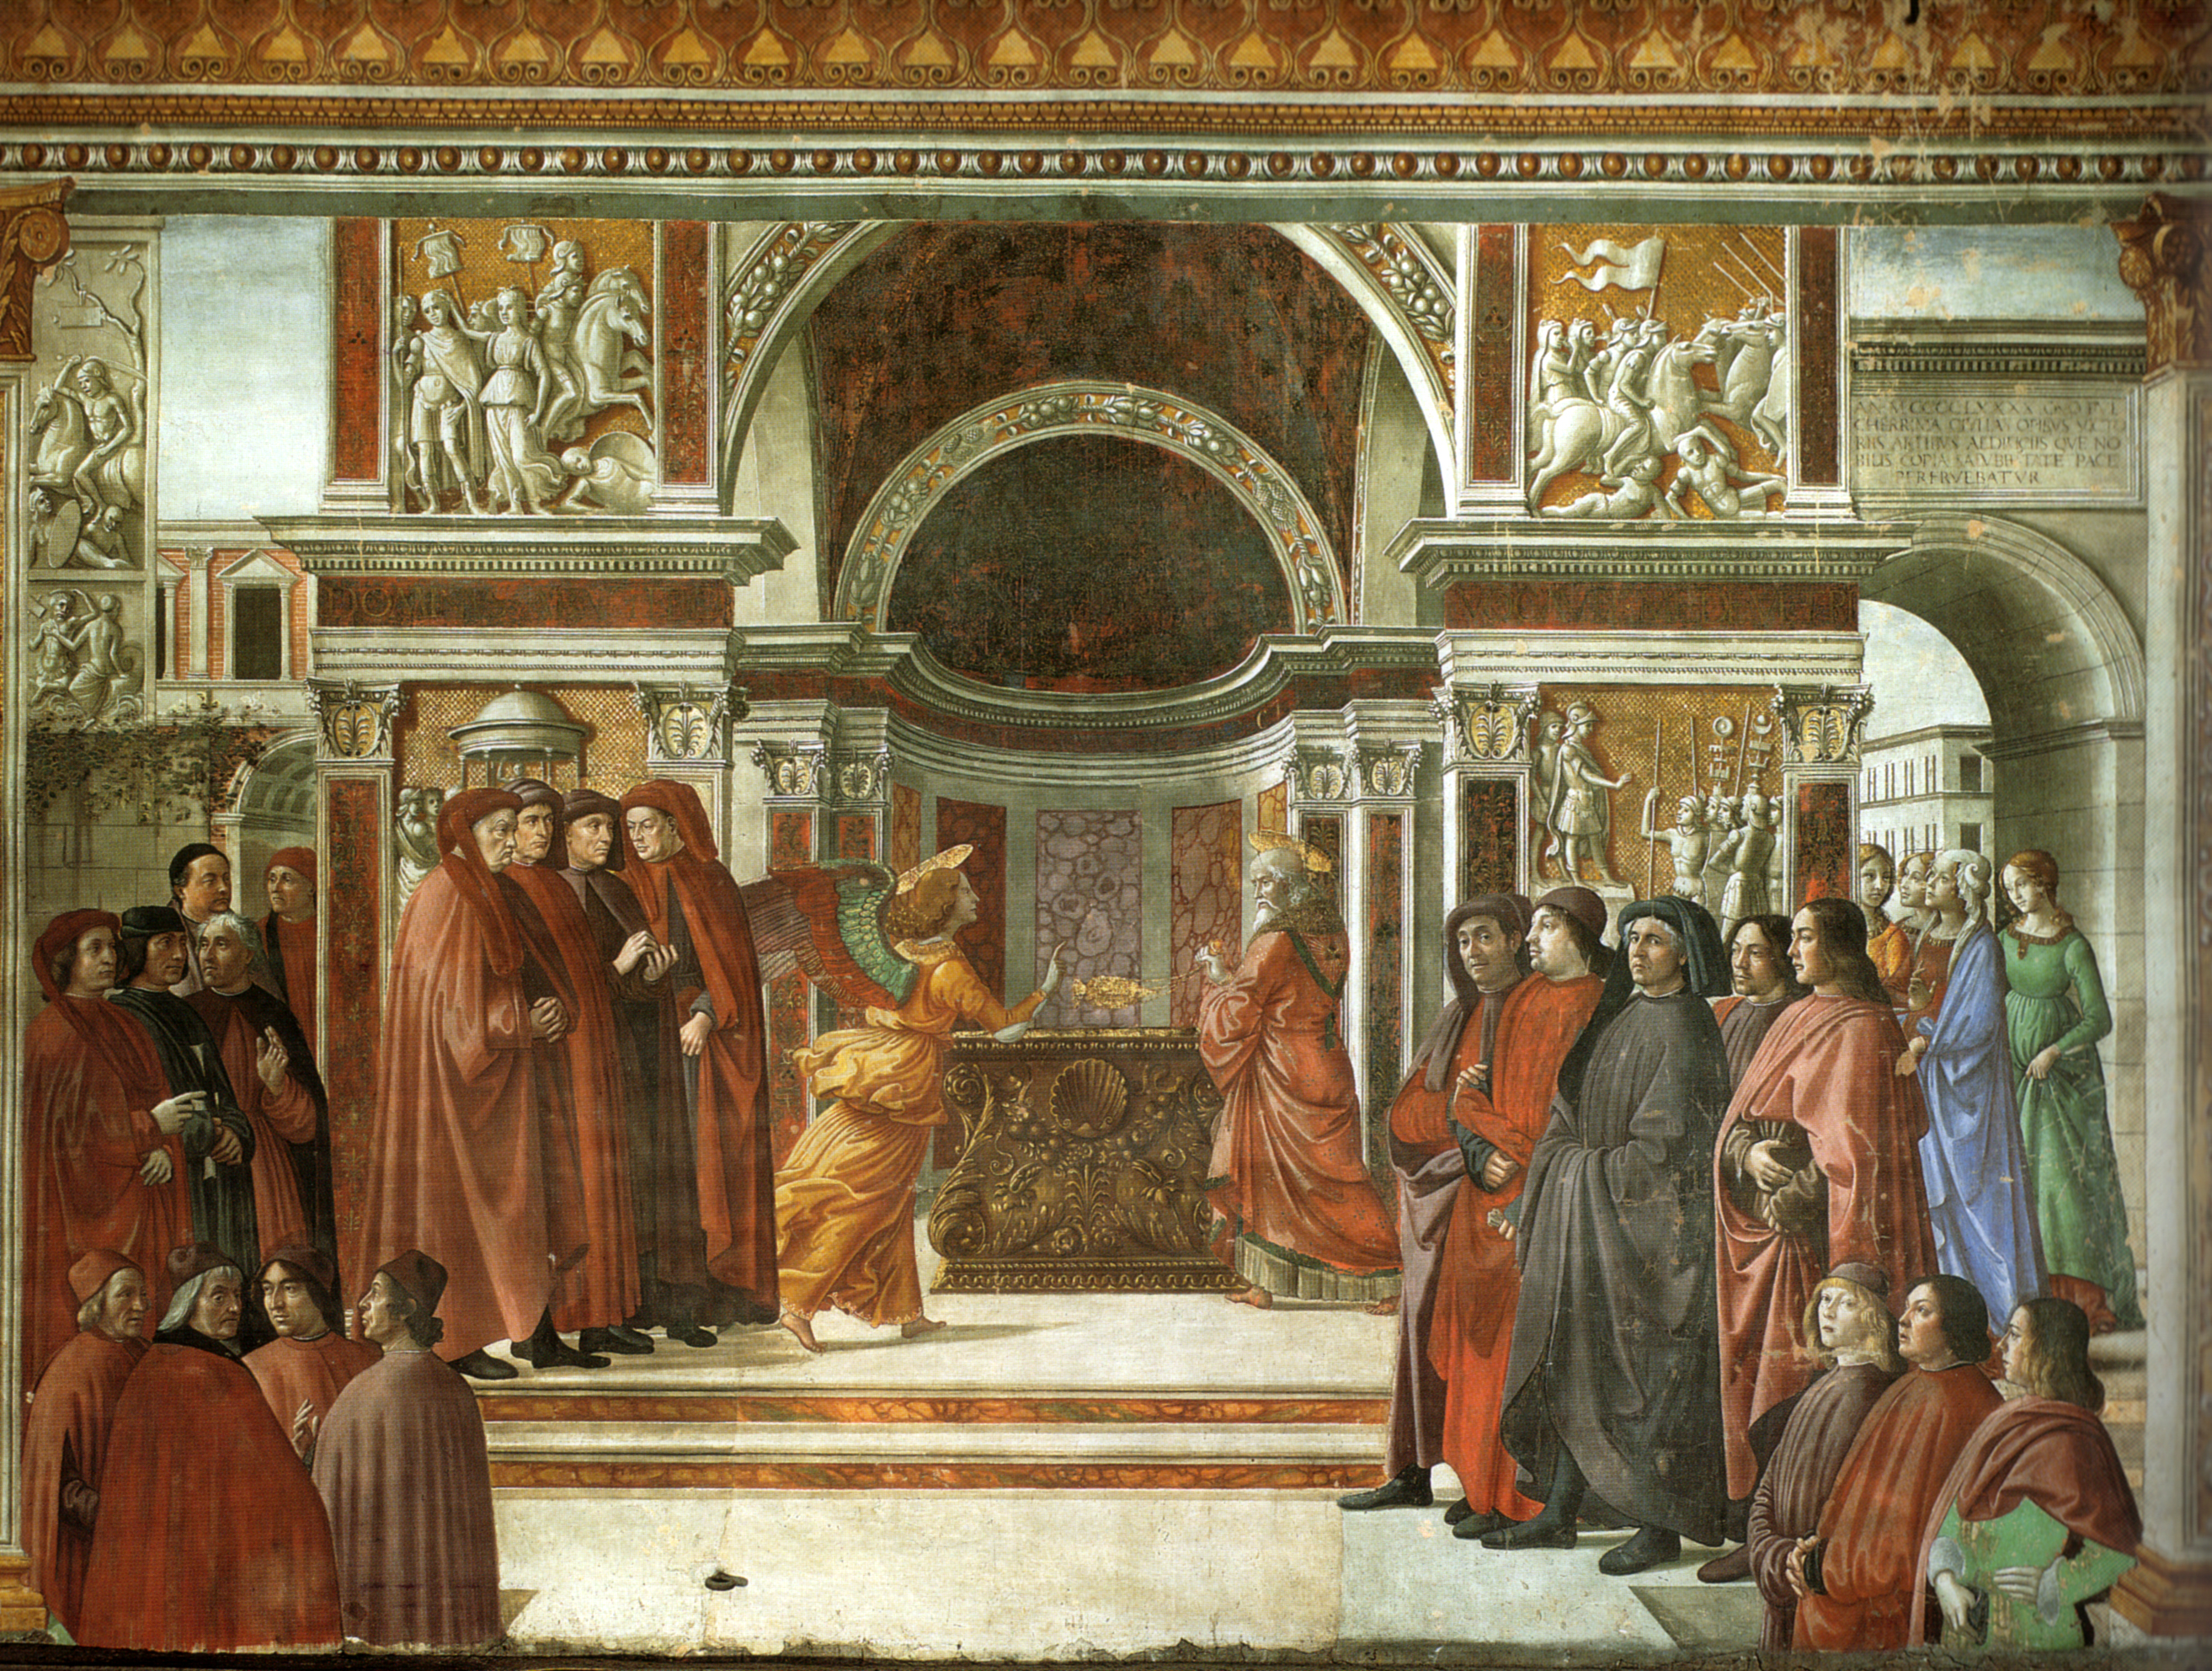 Cappella tornabuoni frescoes in Florence. Annu...